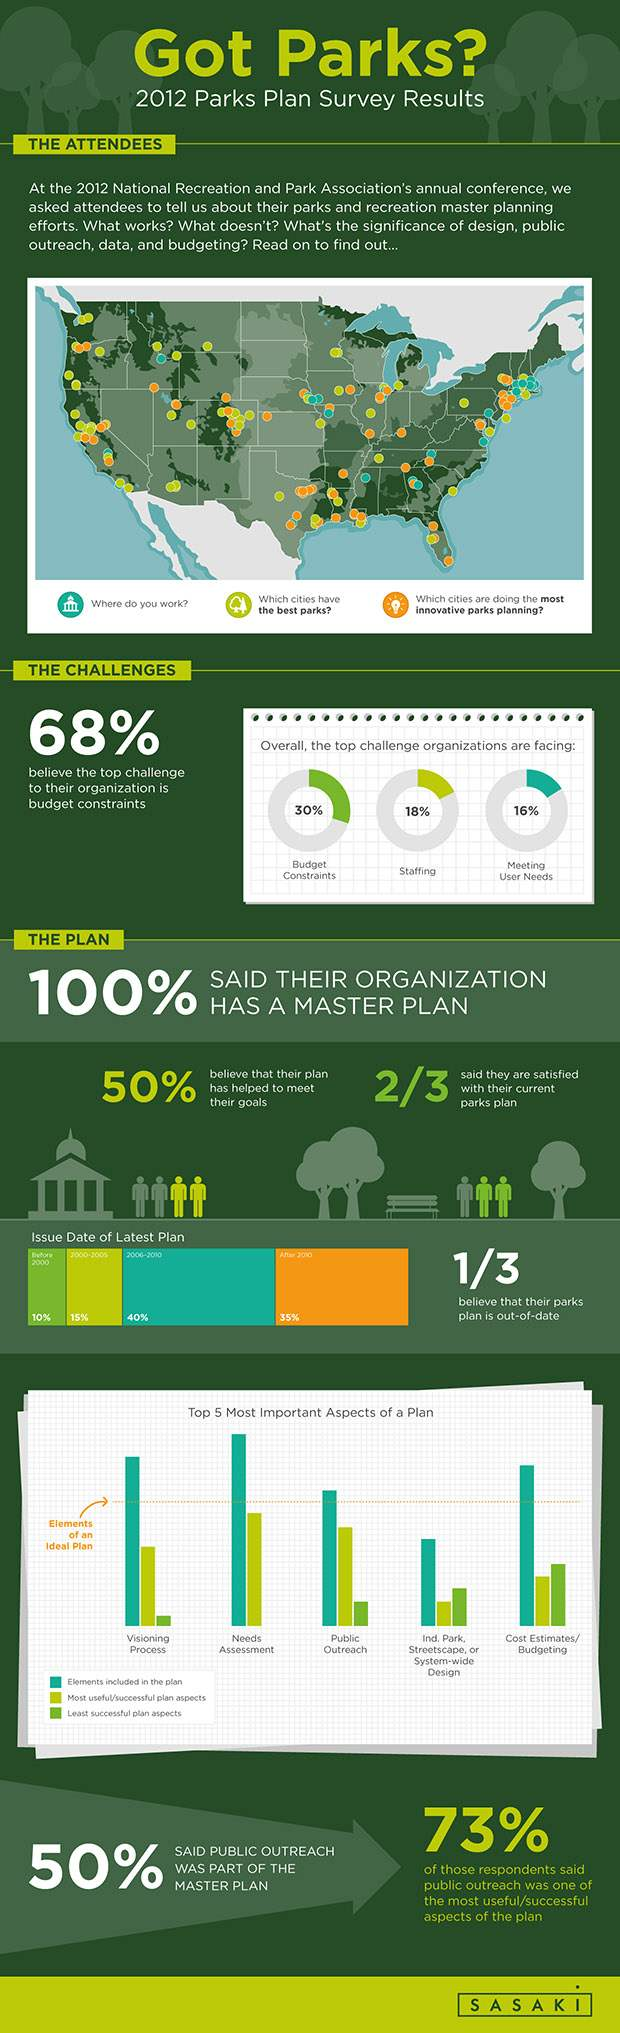 NRPA Infographic FINAL 121812